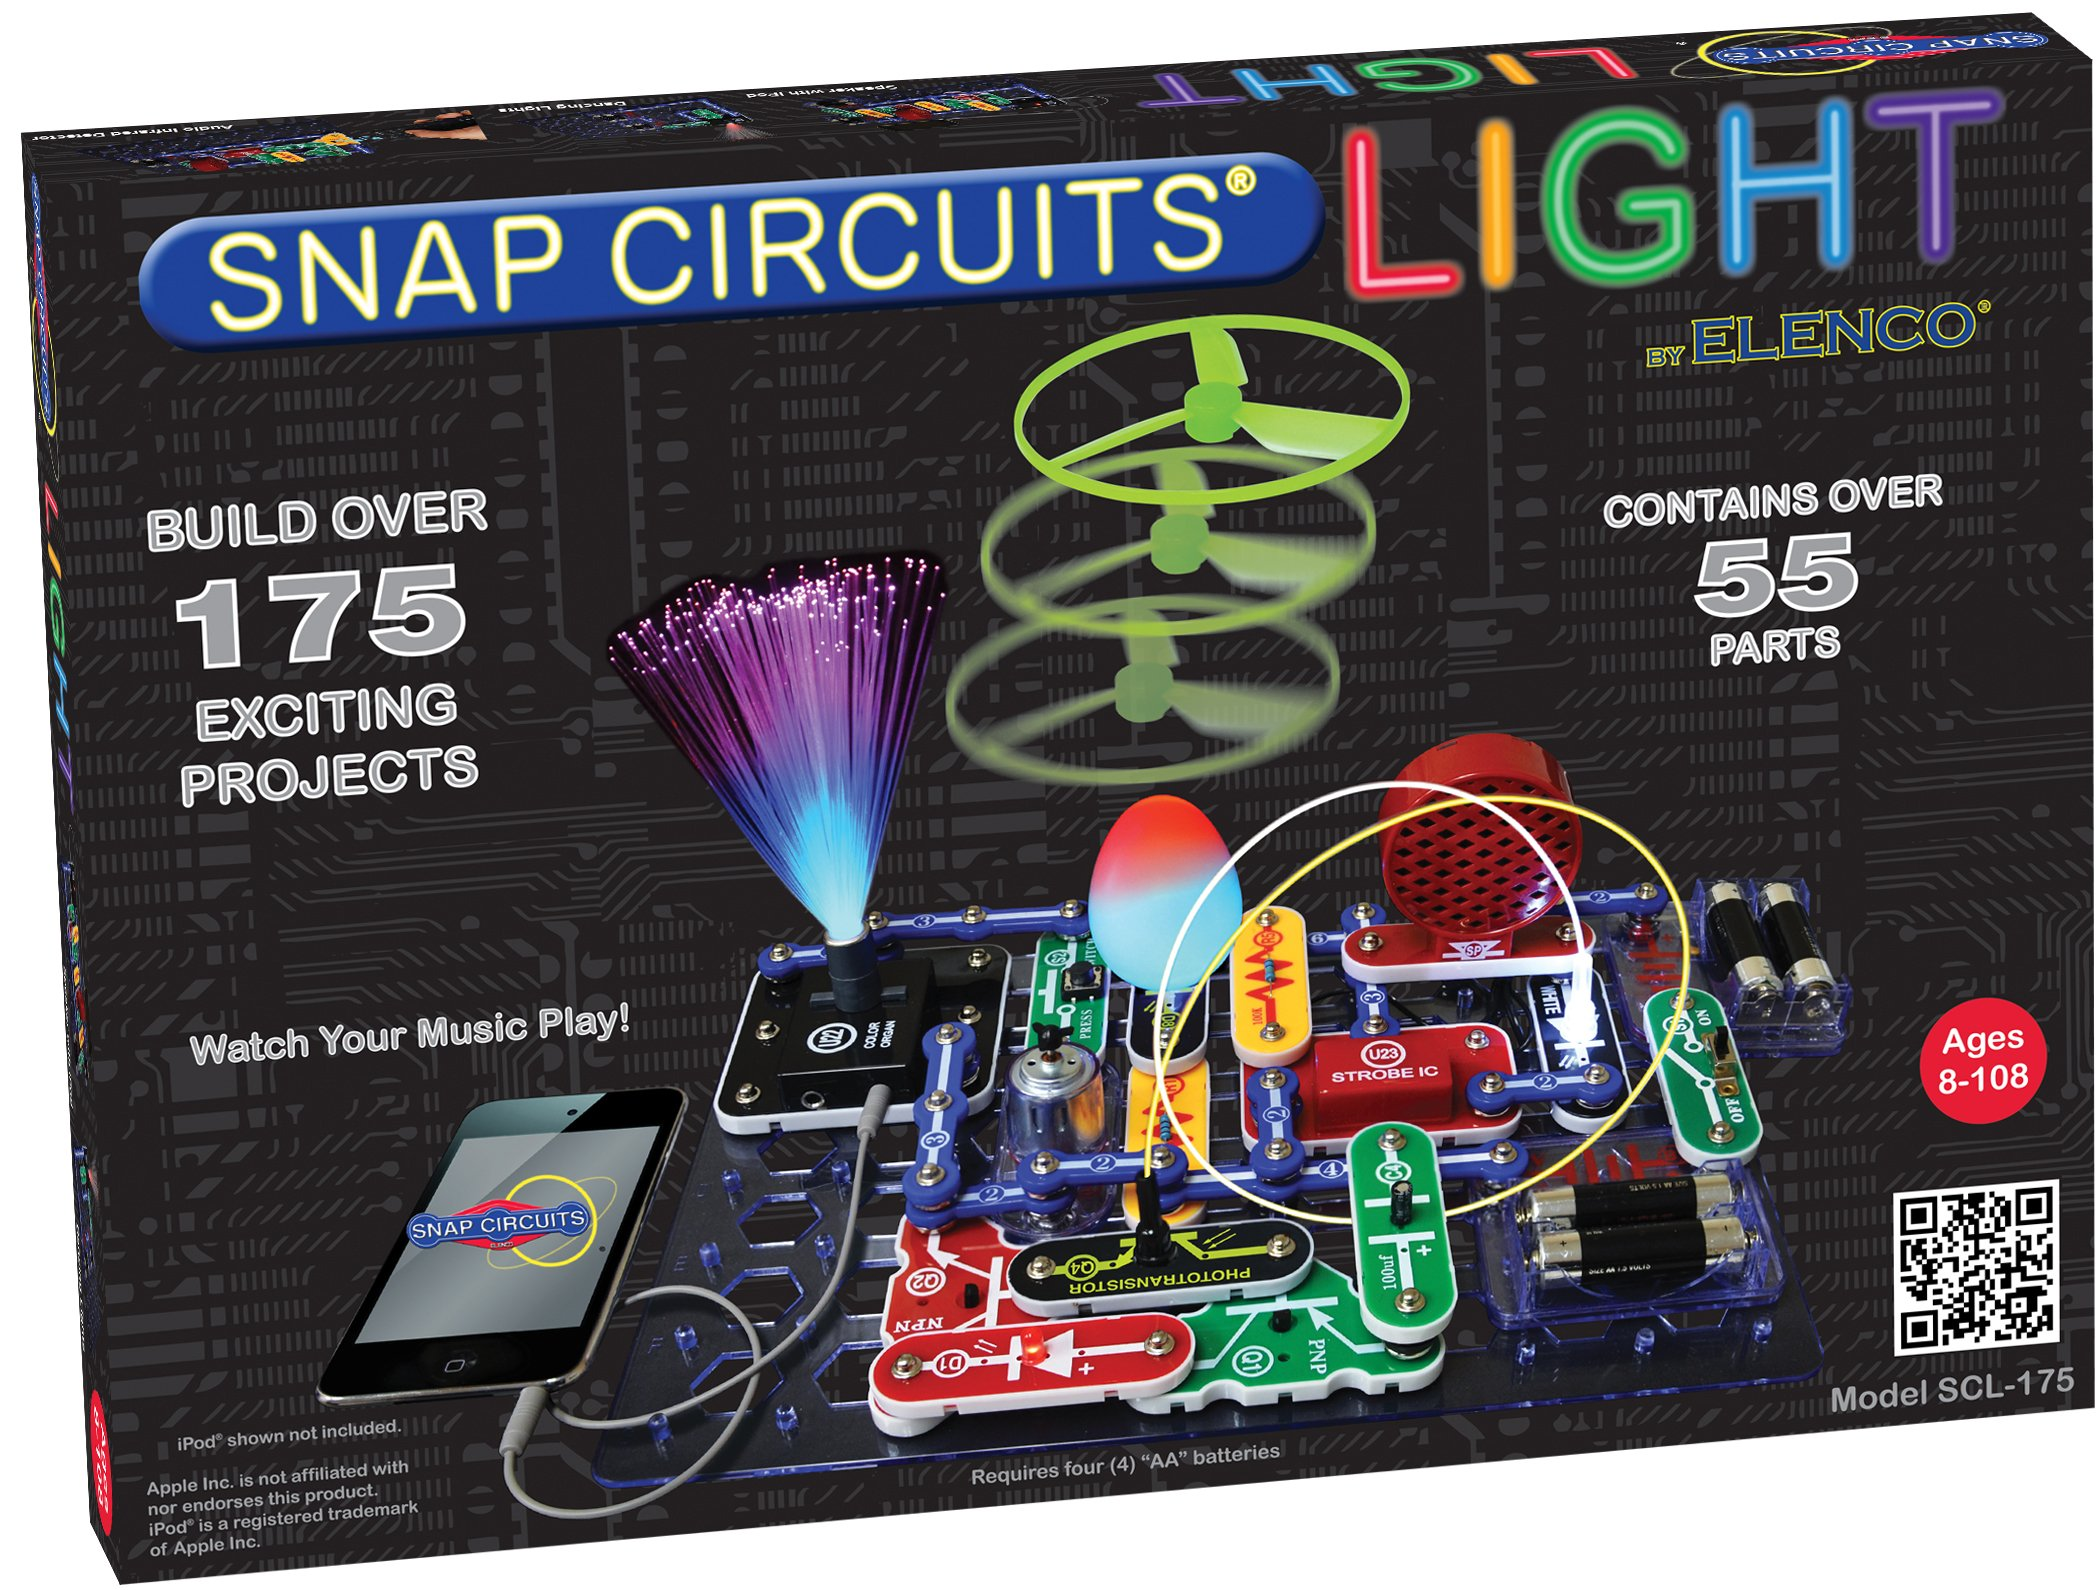 Snap Circuits LIGHT Electronics Exploration Kit | Over 175 Exciting STEM Projects | Full Color Project Manual | 55+ Snap Circuits Parts | STEM Educational Toys for Kids 8+ by Snap Circuits